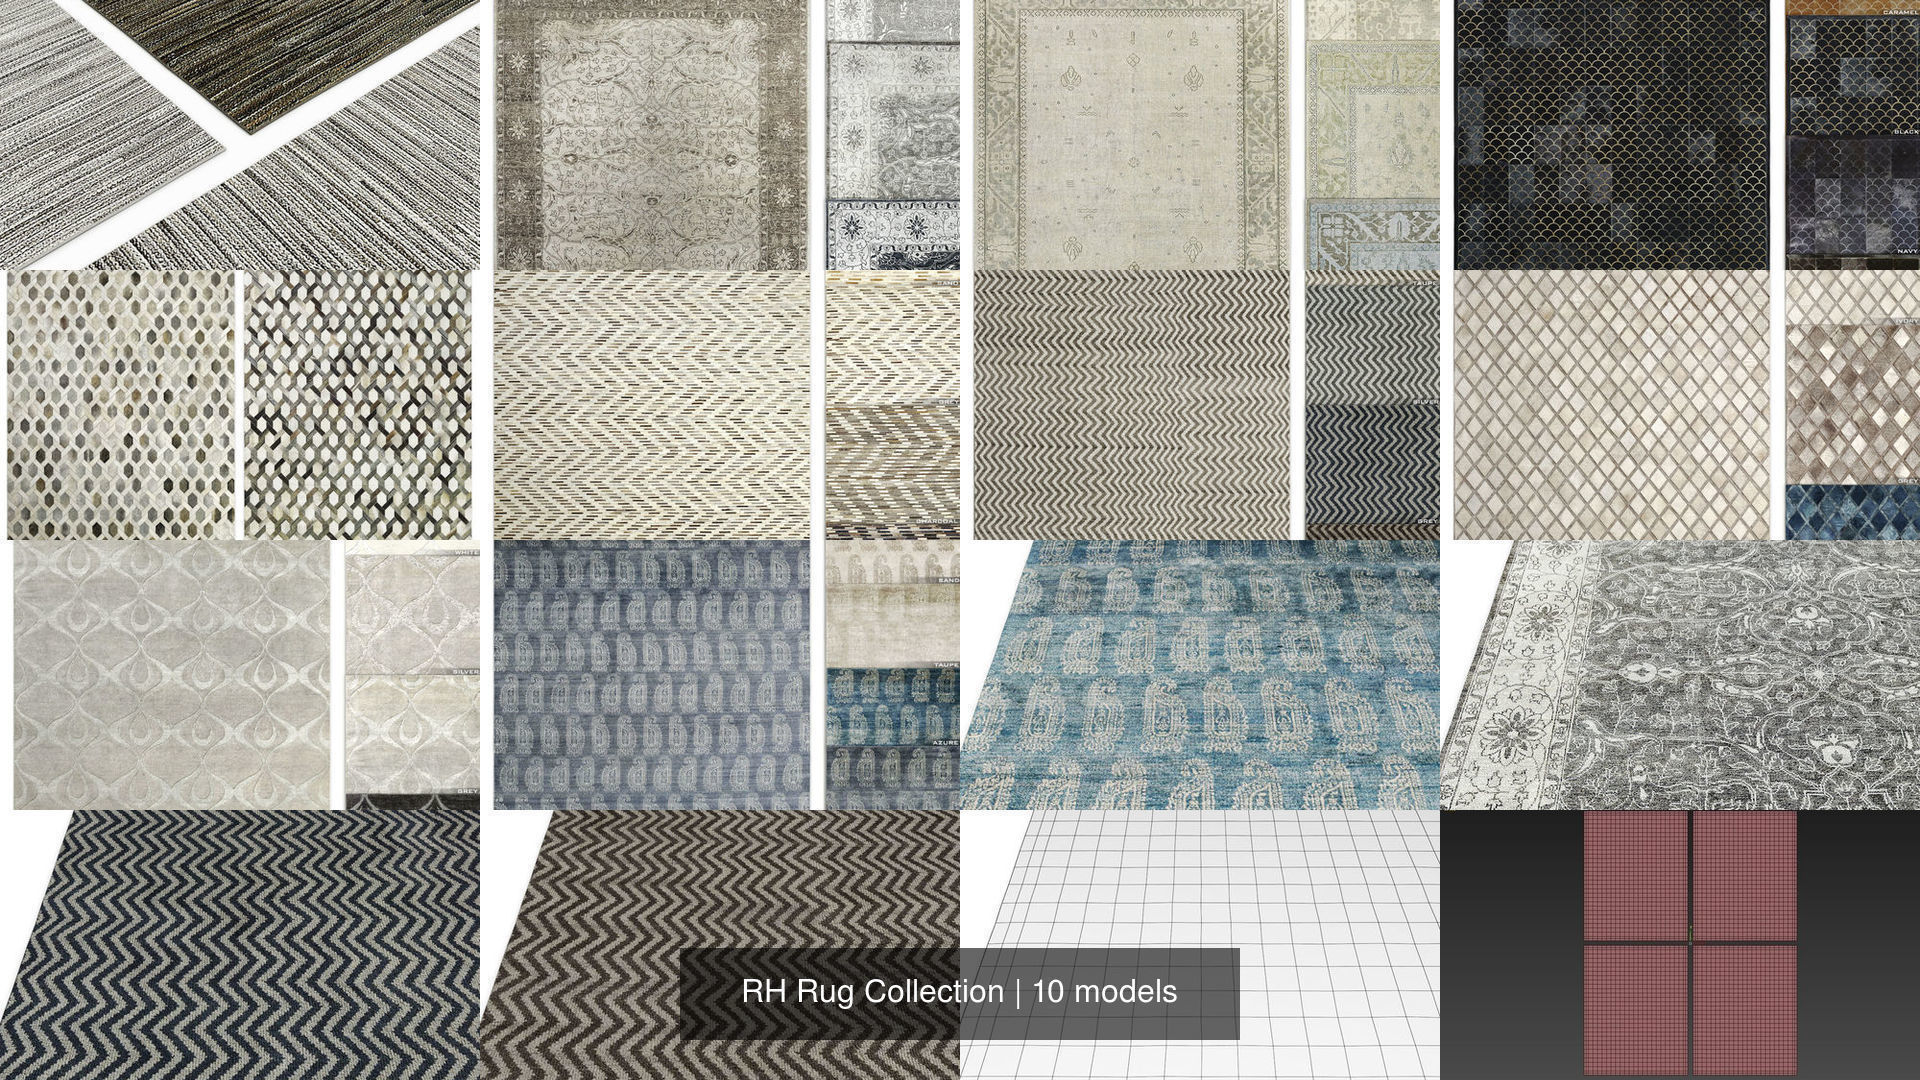 RH Rug Collection